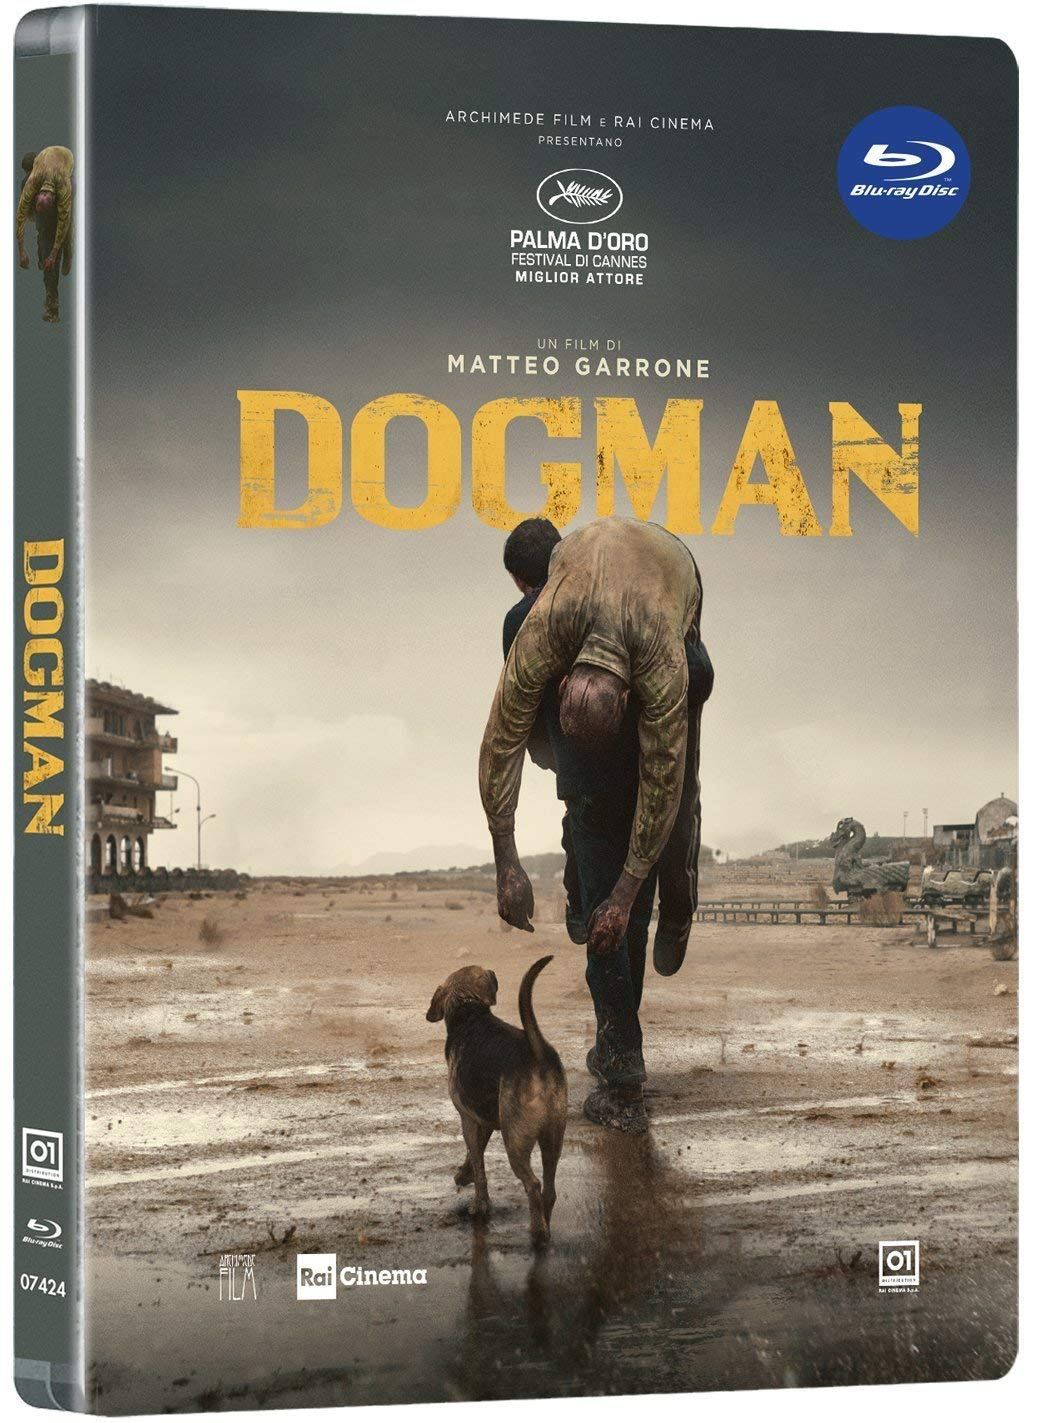 DOGMAN (LTD STEELBOOK) - BLU RAY